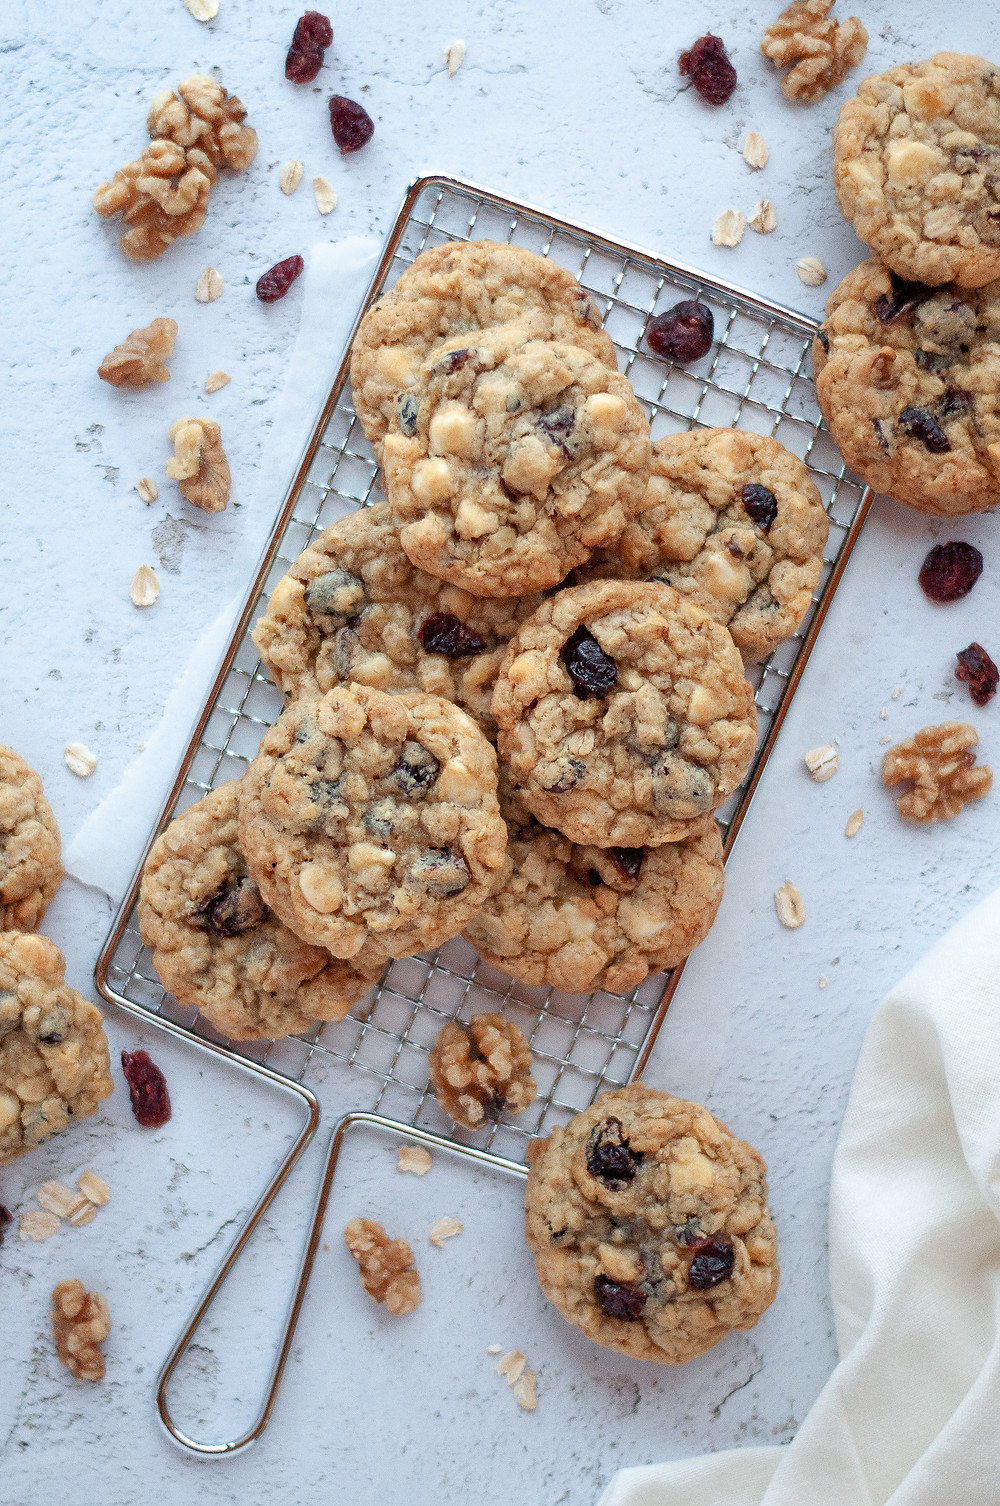 Top down view of a pile of these cranberry oatmeal cookies surrounded by more cookies and walnuts, oats, and craisins